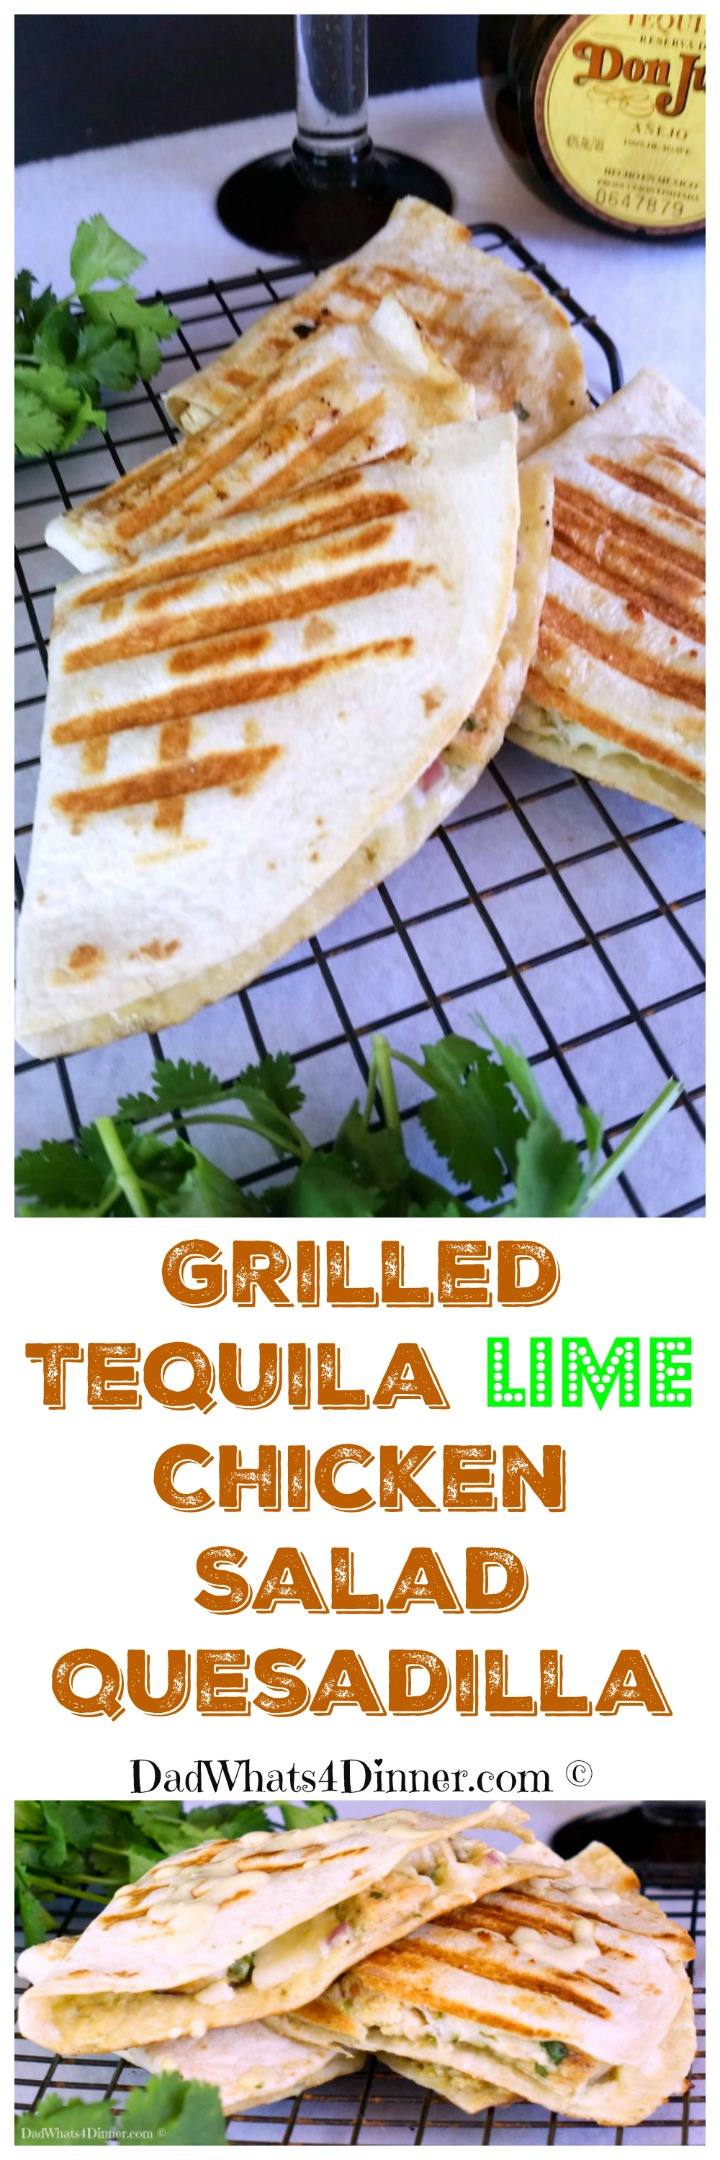 Grilled Tequila Lime Chicken Salad Quesadilla is a fresh south of the border twist on same old chicken salad. Perfect for Cinco de Mayo!